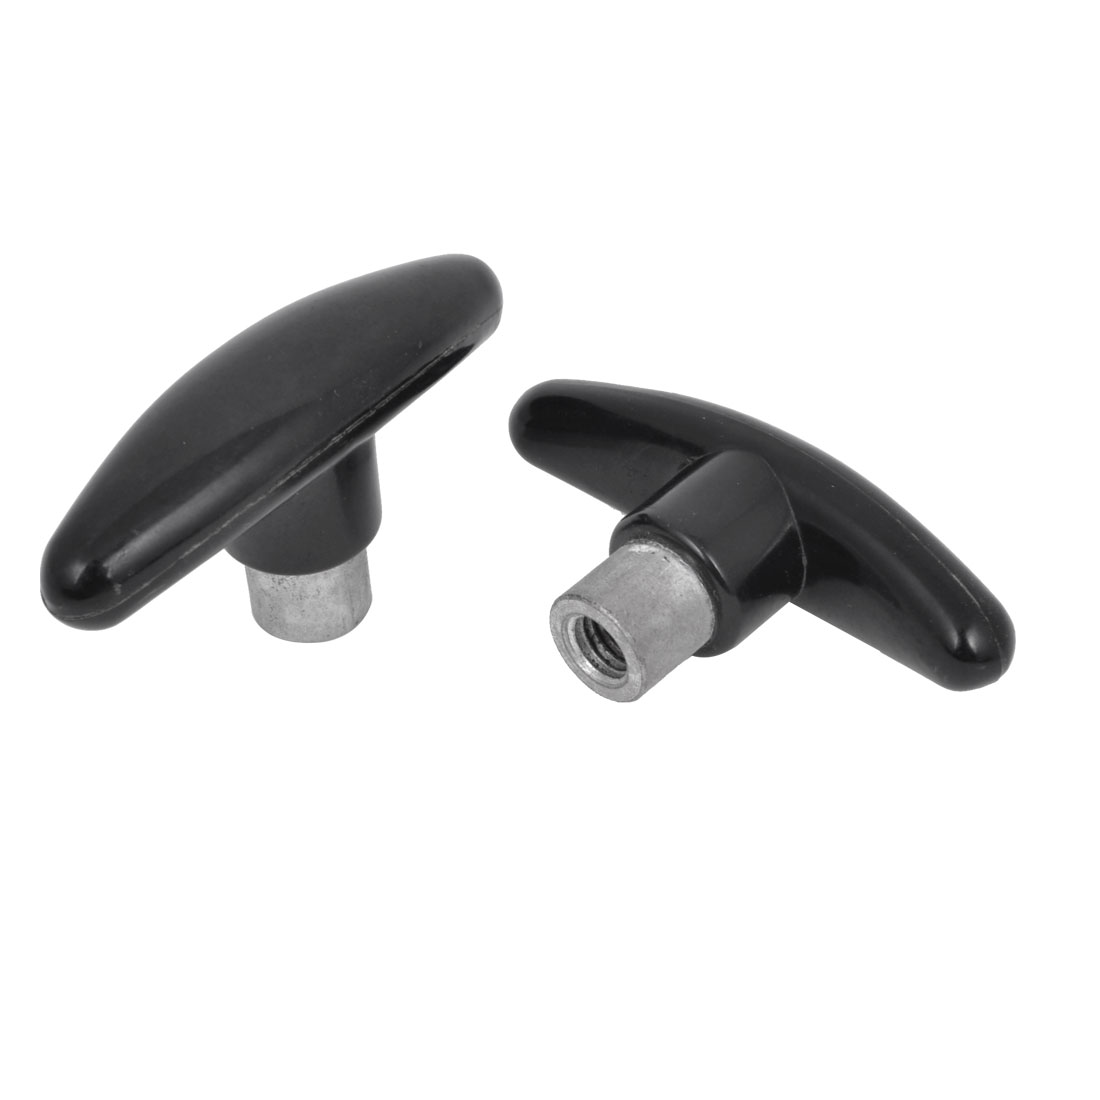 2 Pcs Black T Shaped M10 x 15mm Threaded Handle Lever Replacement